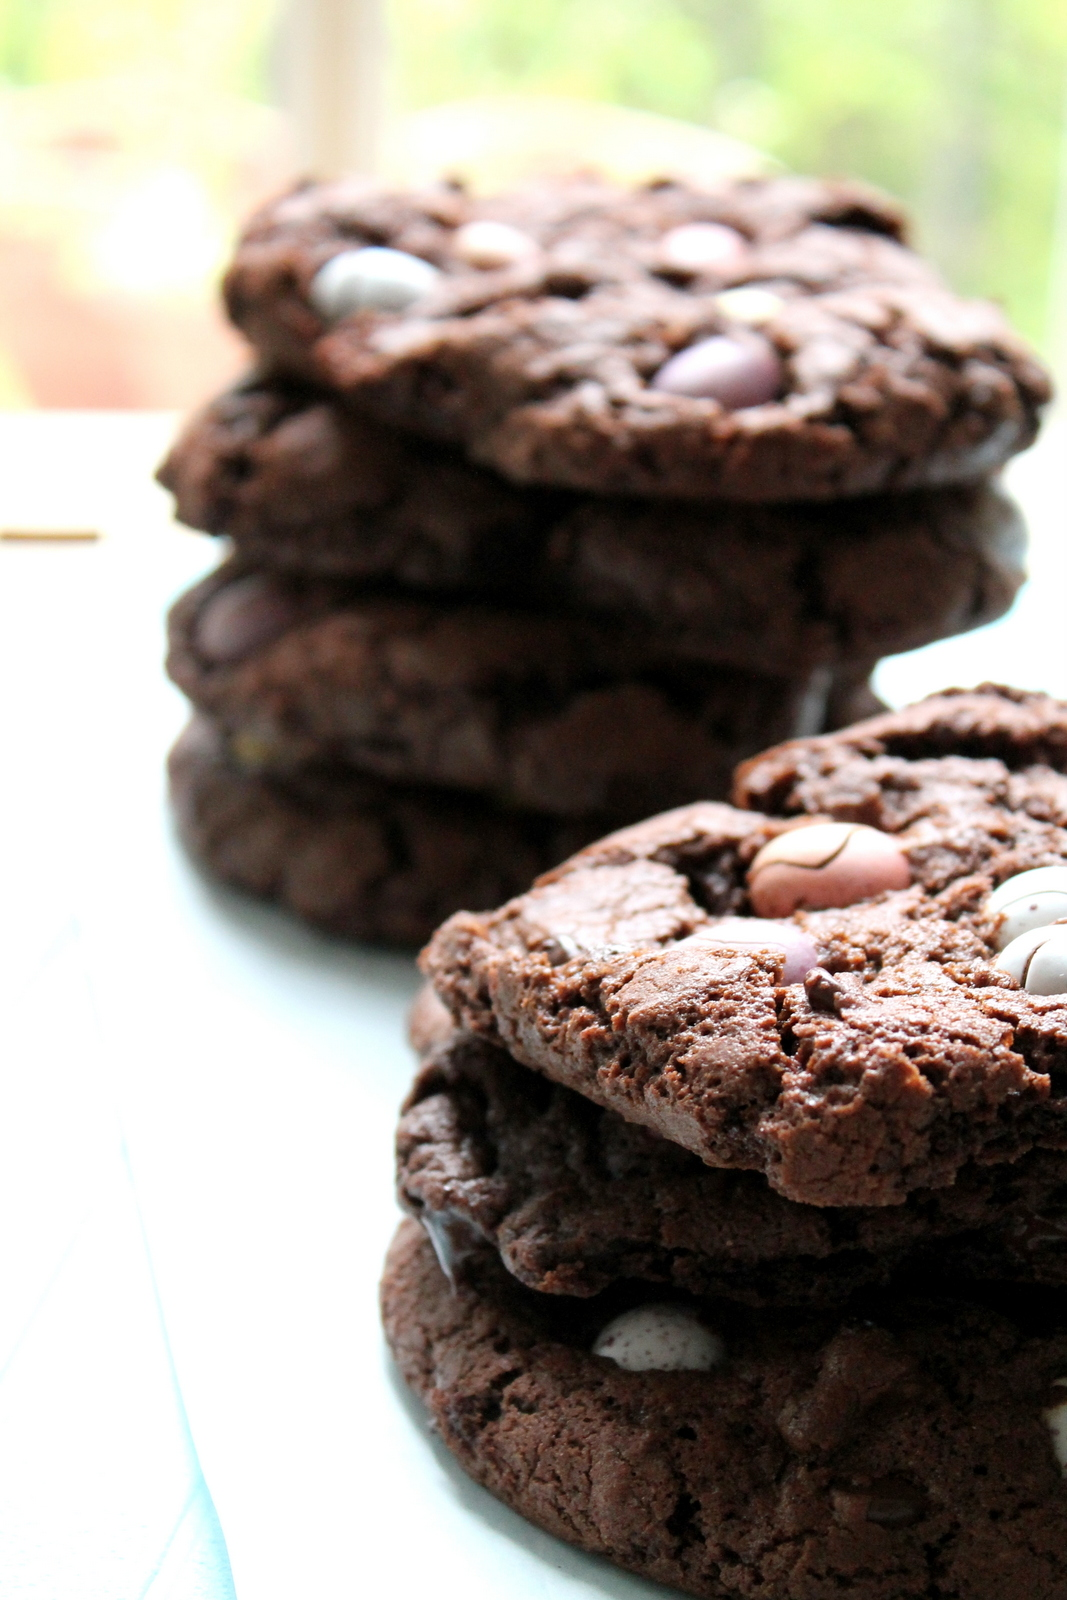 Stacks of dark chocolate cookies with Cadbury's mini eggs